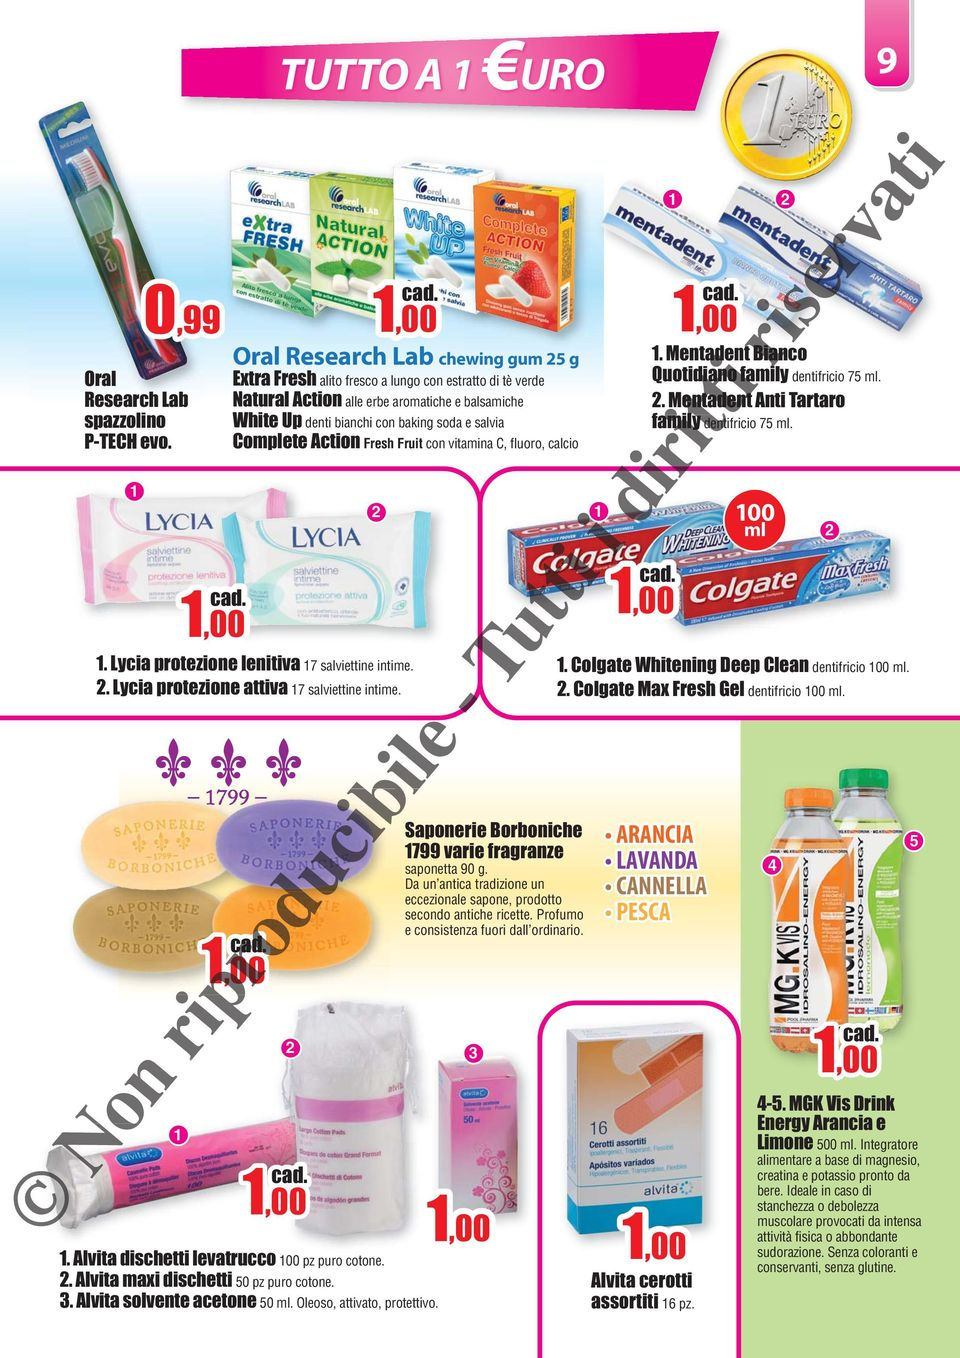 Action Fresh Fruit con vitamina C, fluoro, calcio,00. Mentadent t Bianco Quotidiano family dentifricio 7 ml.. Mentadent Anti Tartaro family dentifricio 7 ml. 00 ml,00.